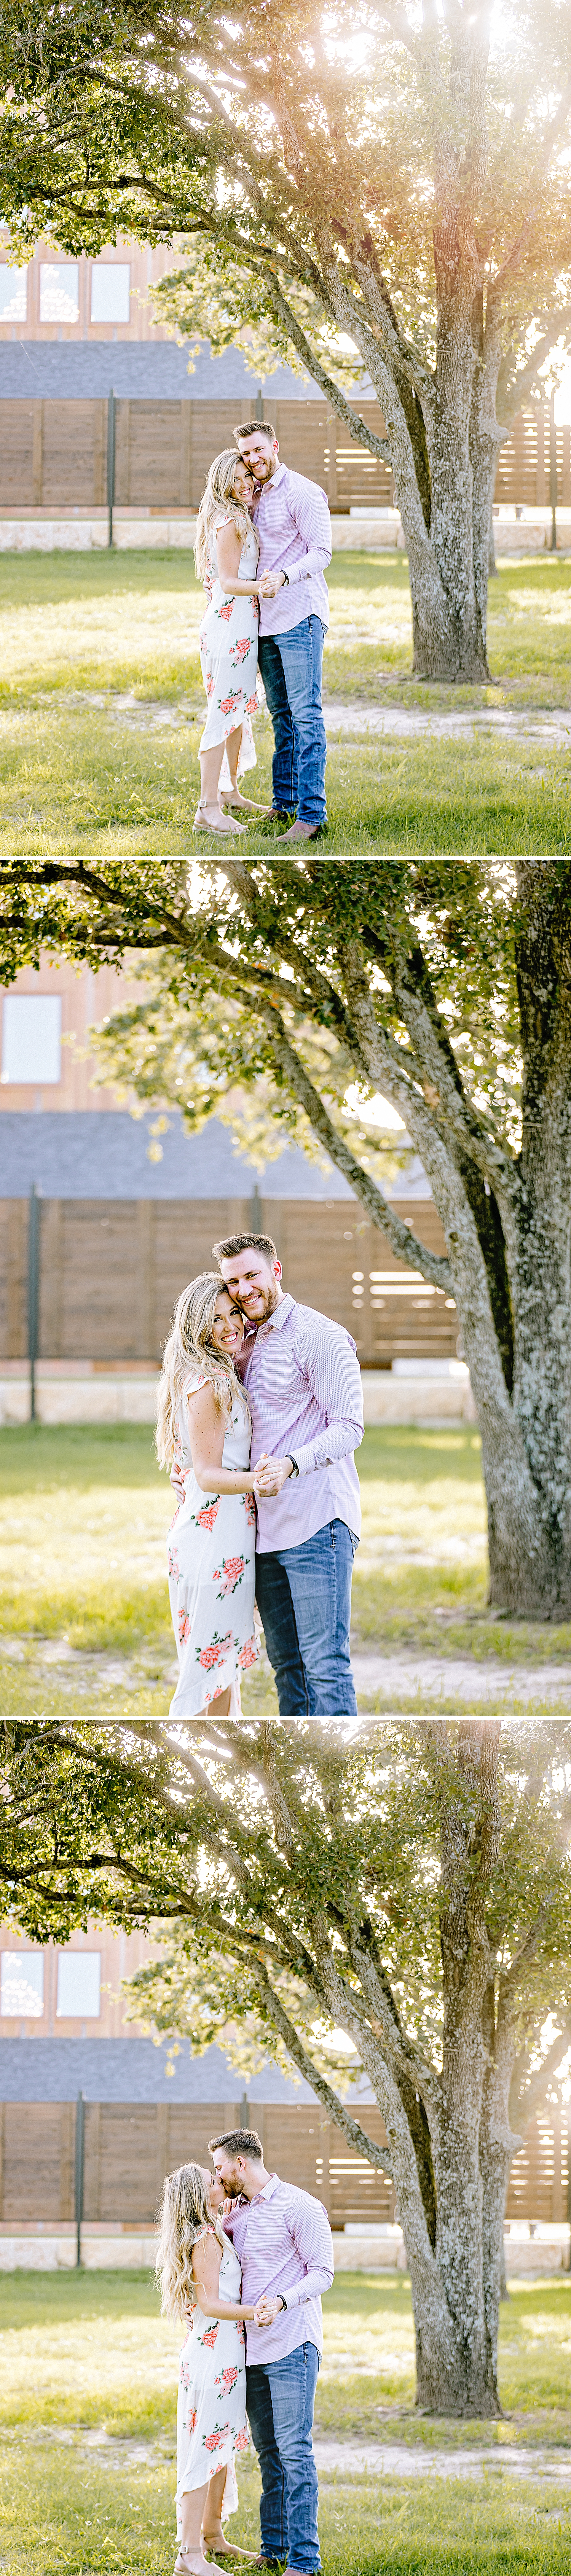 Carly-Barton-Photography-Engagement-Photos-College-Station-Texas-The-Weinberg-at-Wixon-Valley_0035.jpg